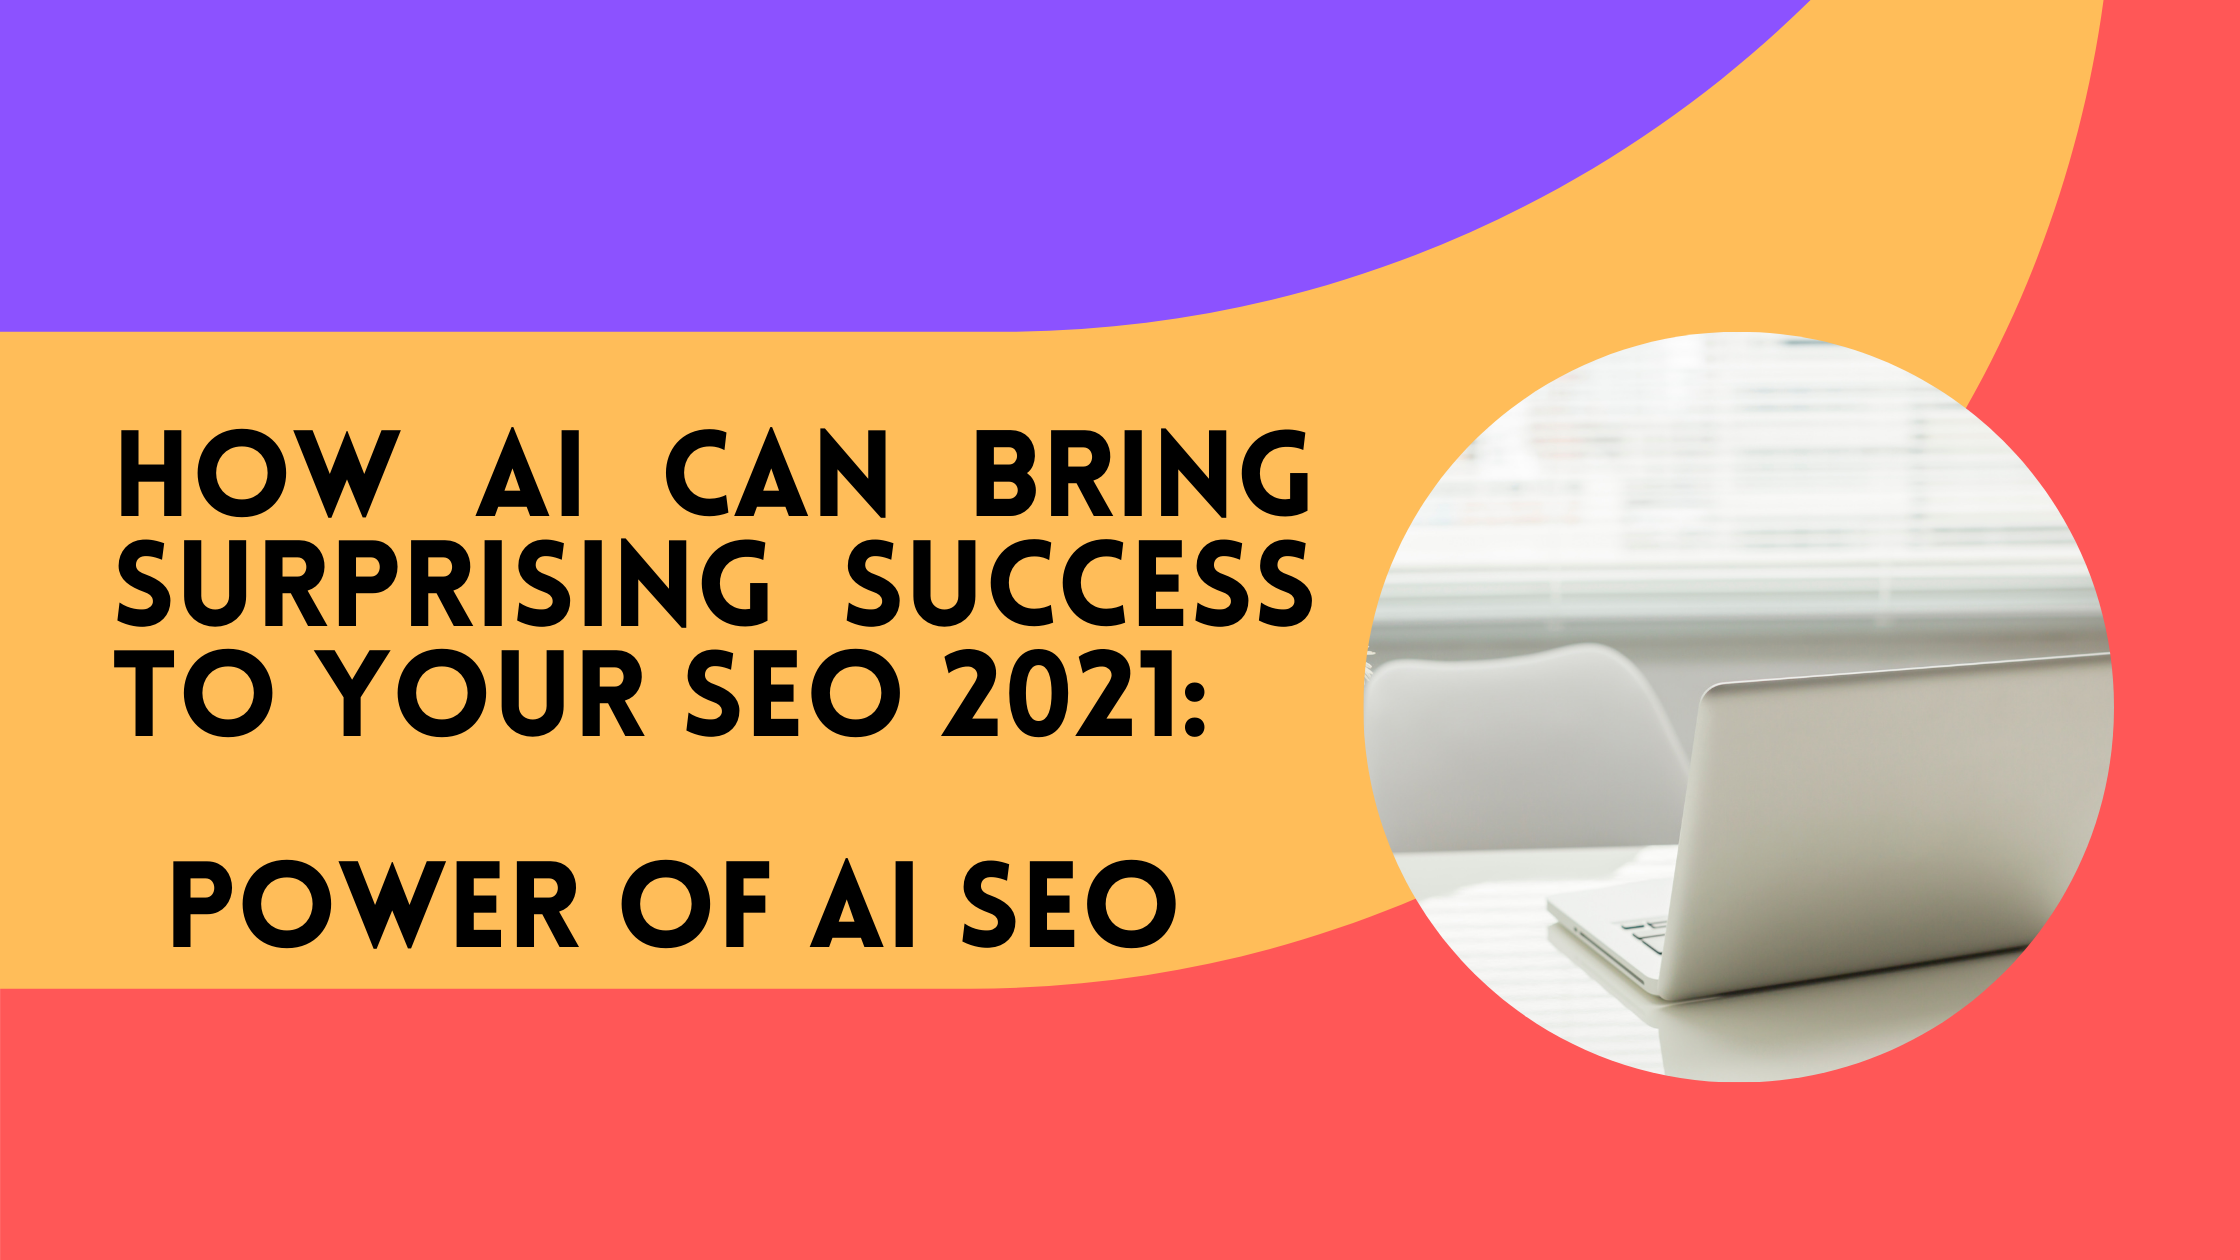 How AI can Bring Surprising Success to your SEO 2021